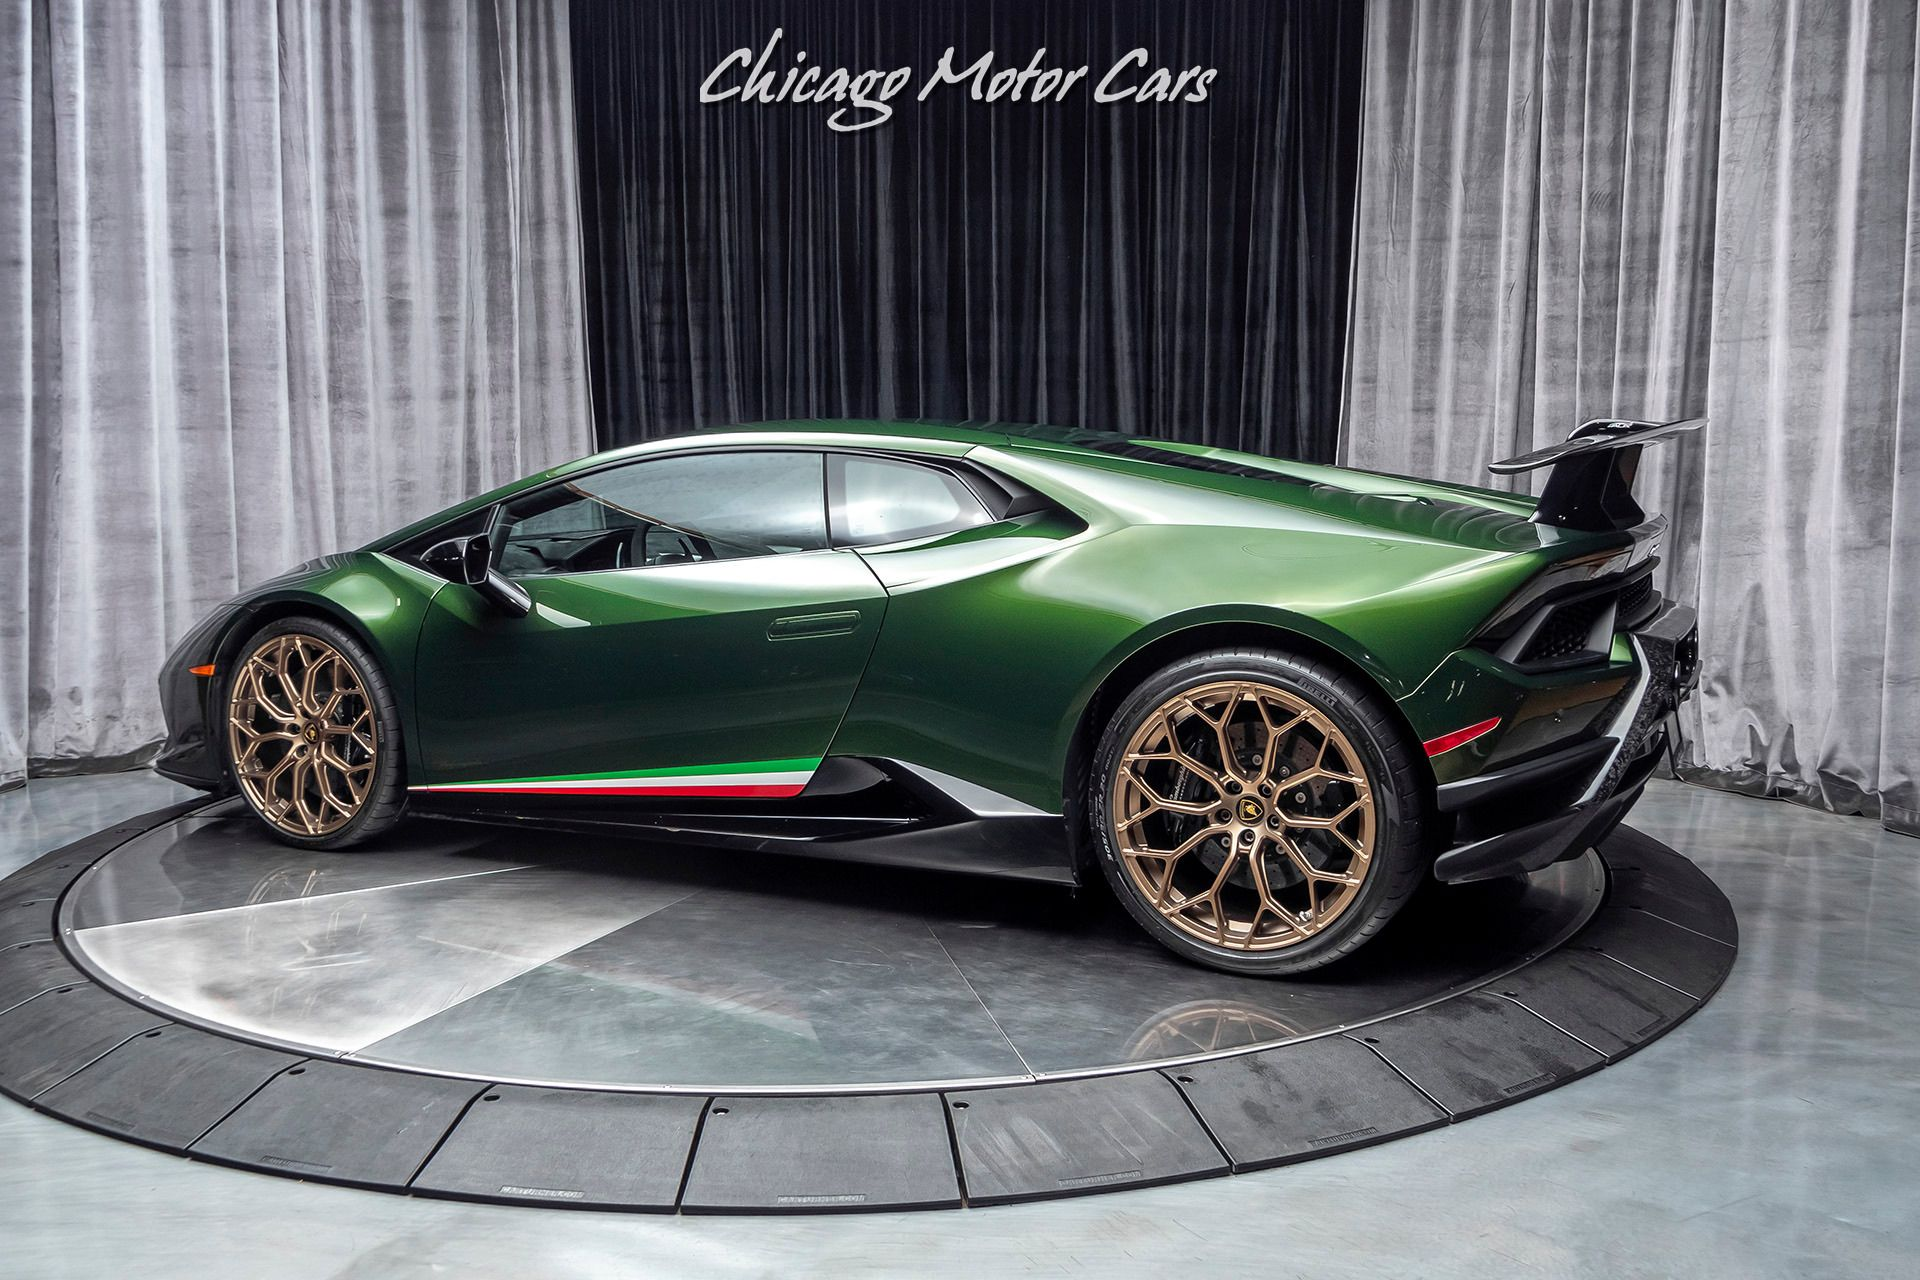 2018 Lamborghini Huracan Performante Lp640 4 Coupe Chicago Motor Cars United States For Sale O Lamborghini Huracan Lamborghini Lamborghini Huracan Spyder